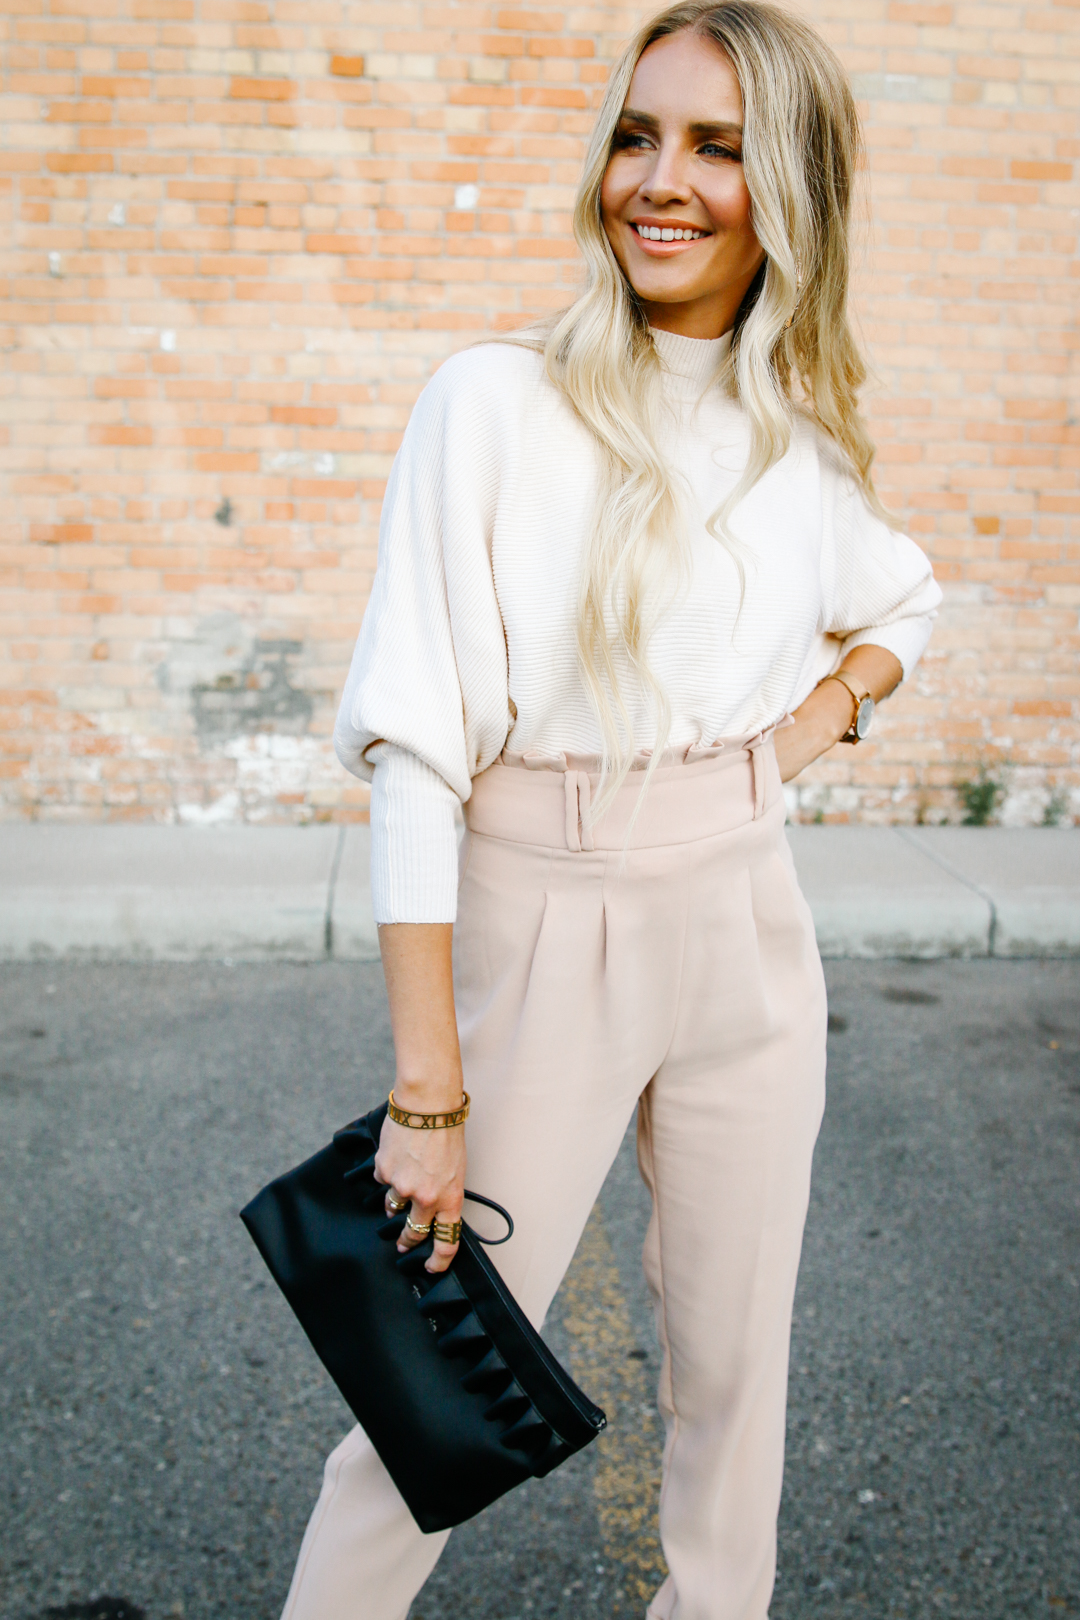 OUTFIT: Autumn Blush Tones | Feel Wunderbar